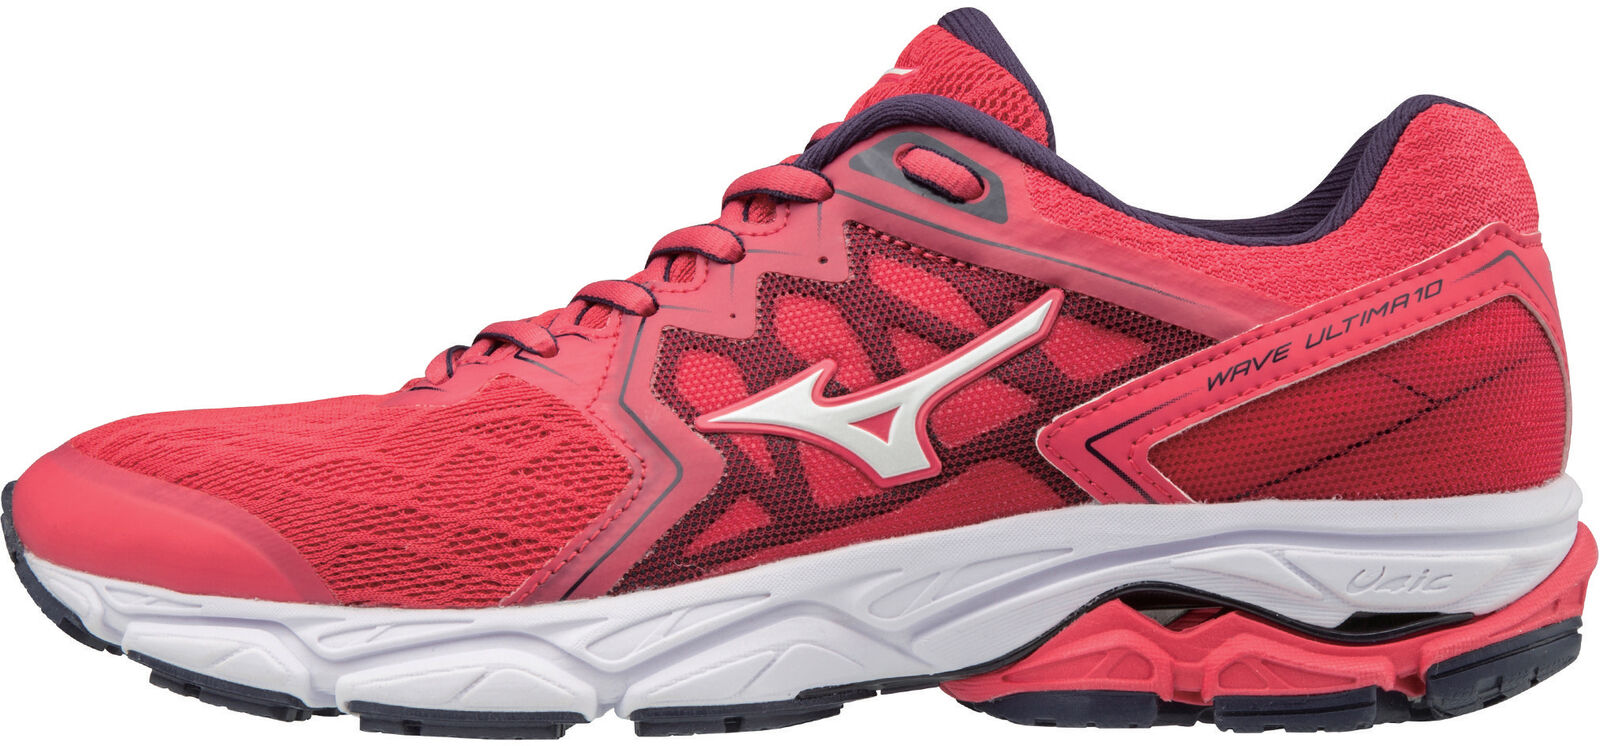 Mizuno Wave Ultima 10 10 10 Womens Running shoes - Red df4220